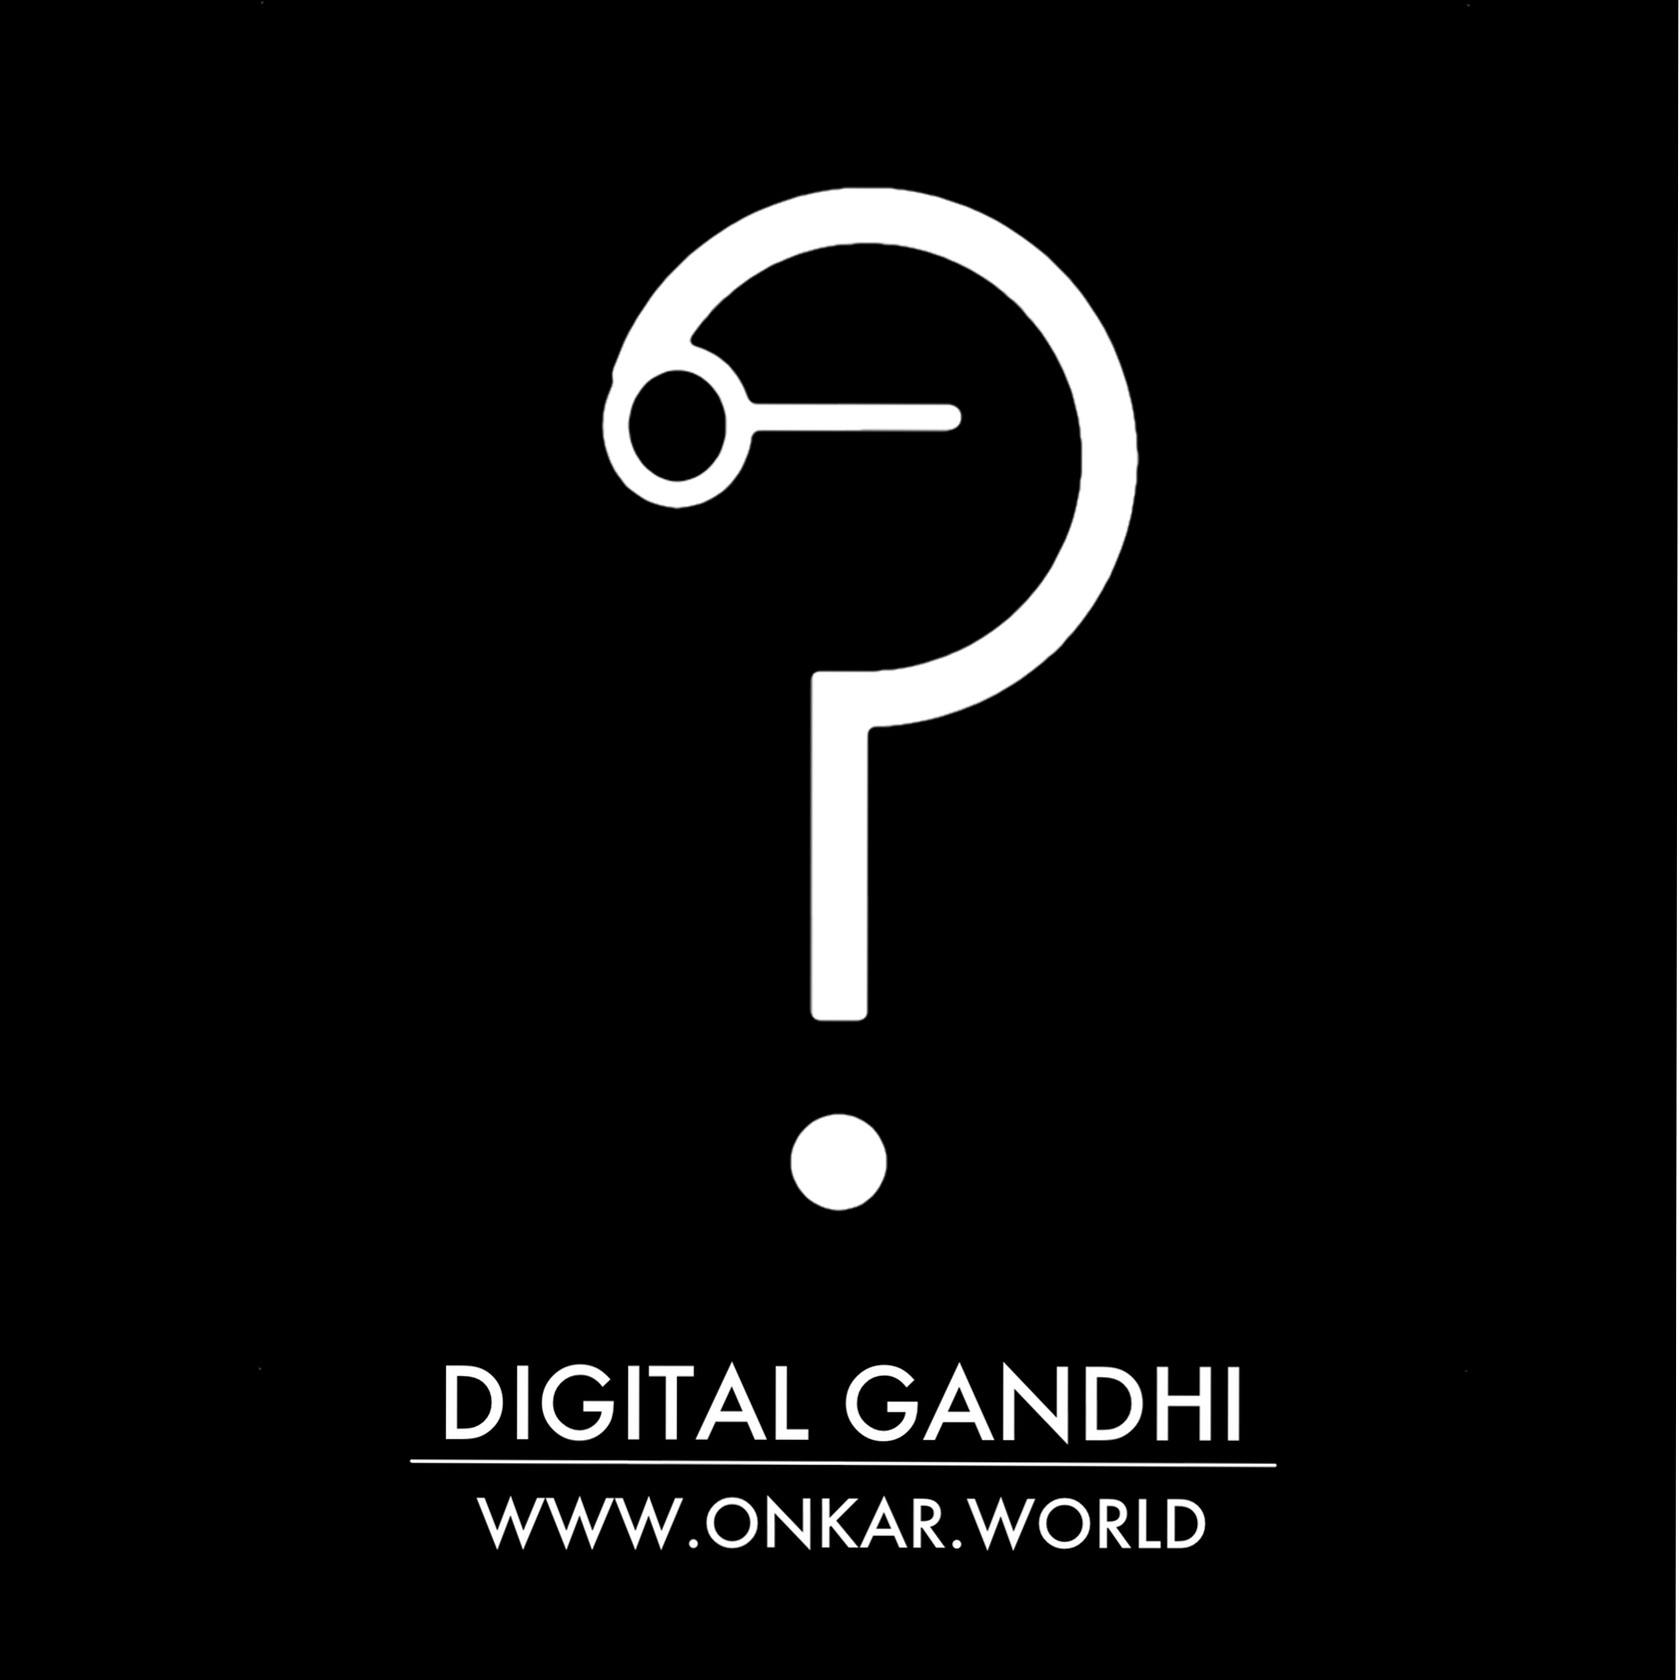 Digital Gandhi